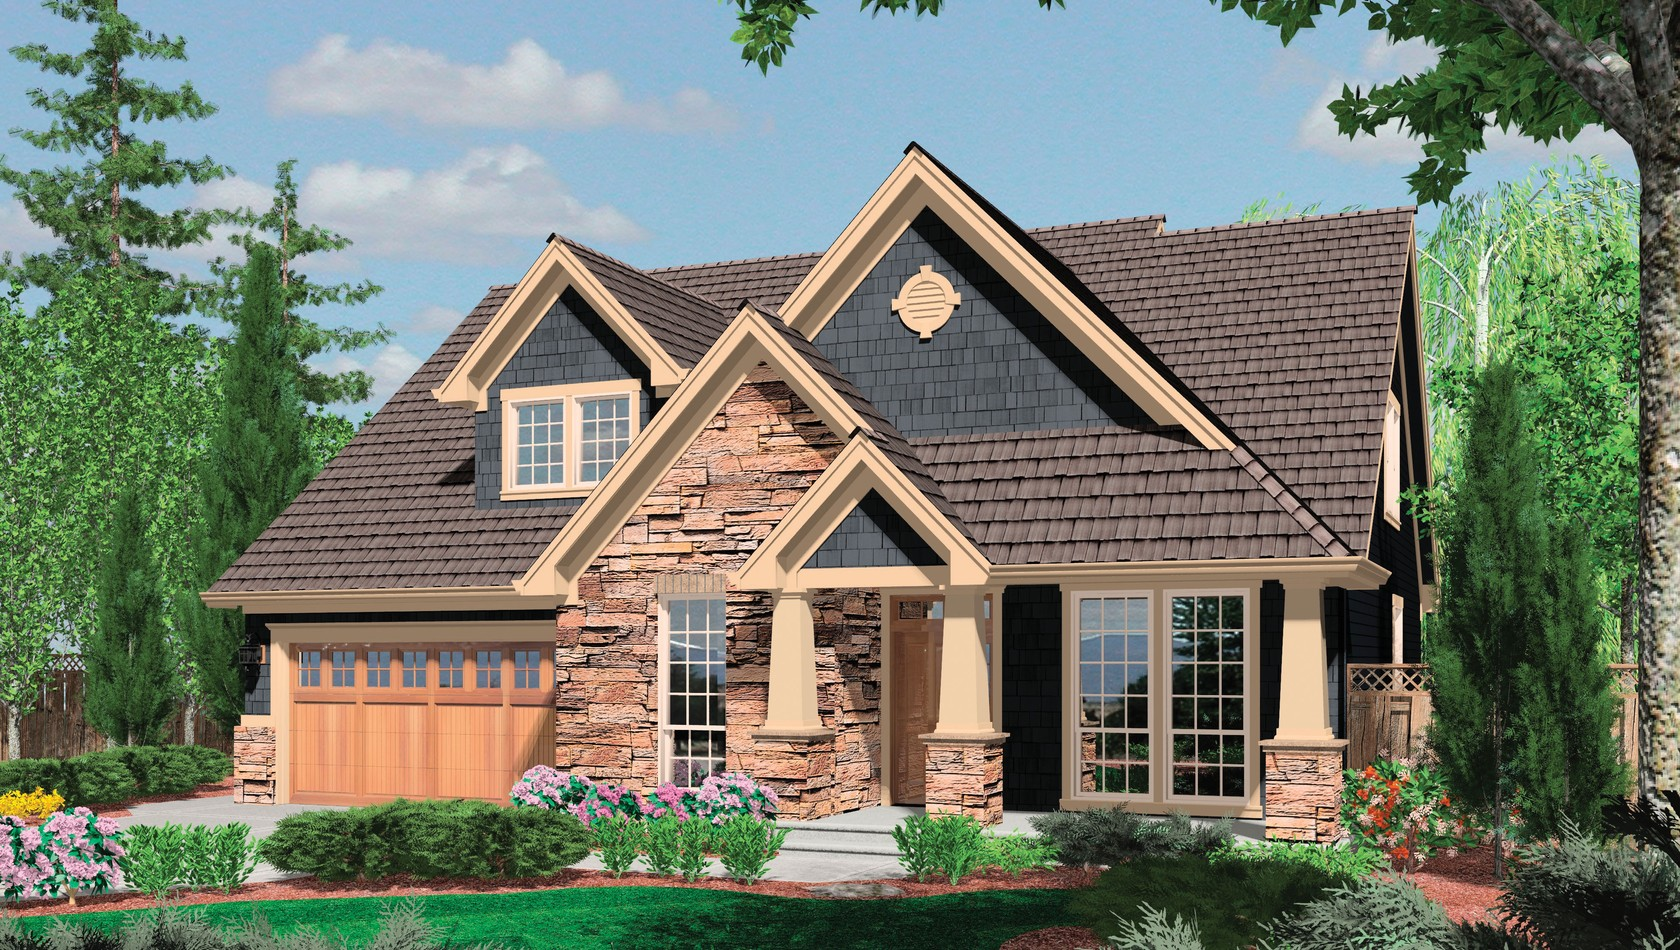 Main image for house plan 22145: The Ackley